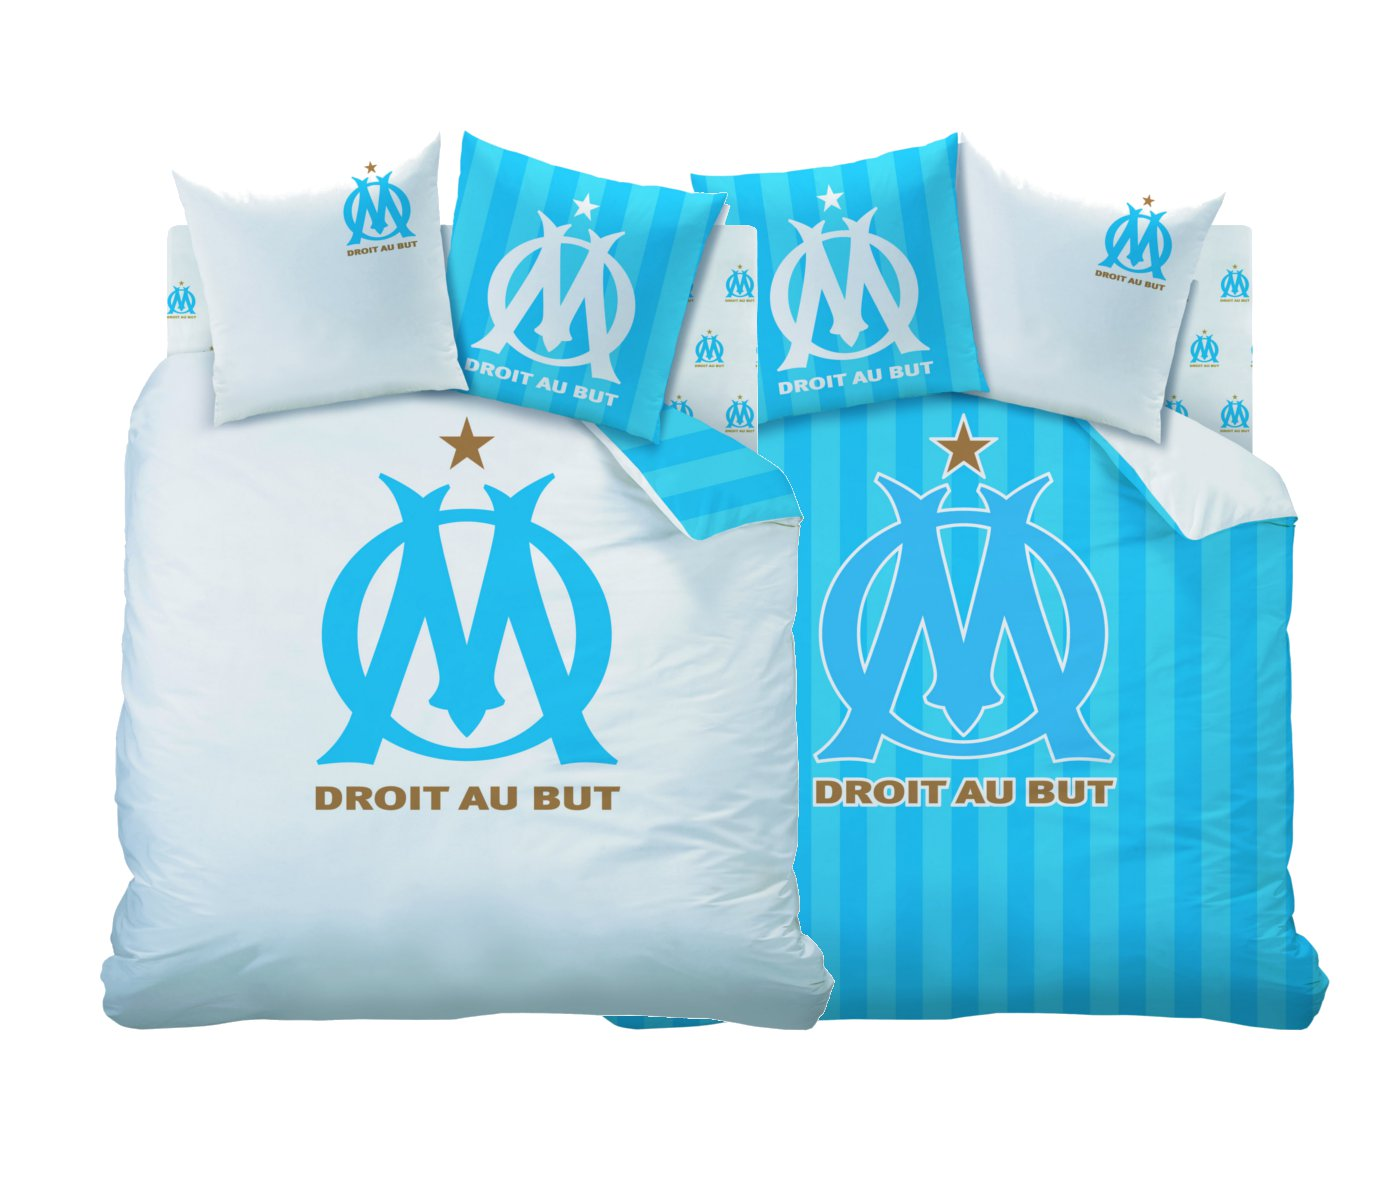 housse de couette om parure de lit r versible 200 x 200 cm logo om olympique marseille. Black Bedroom Furniture Sets. Home Design Ideas